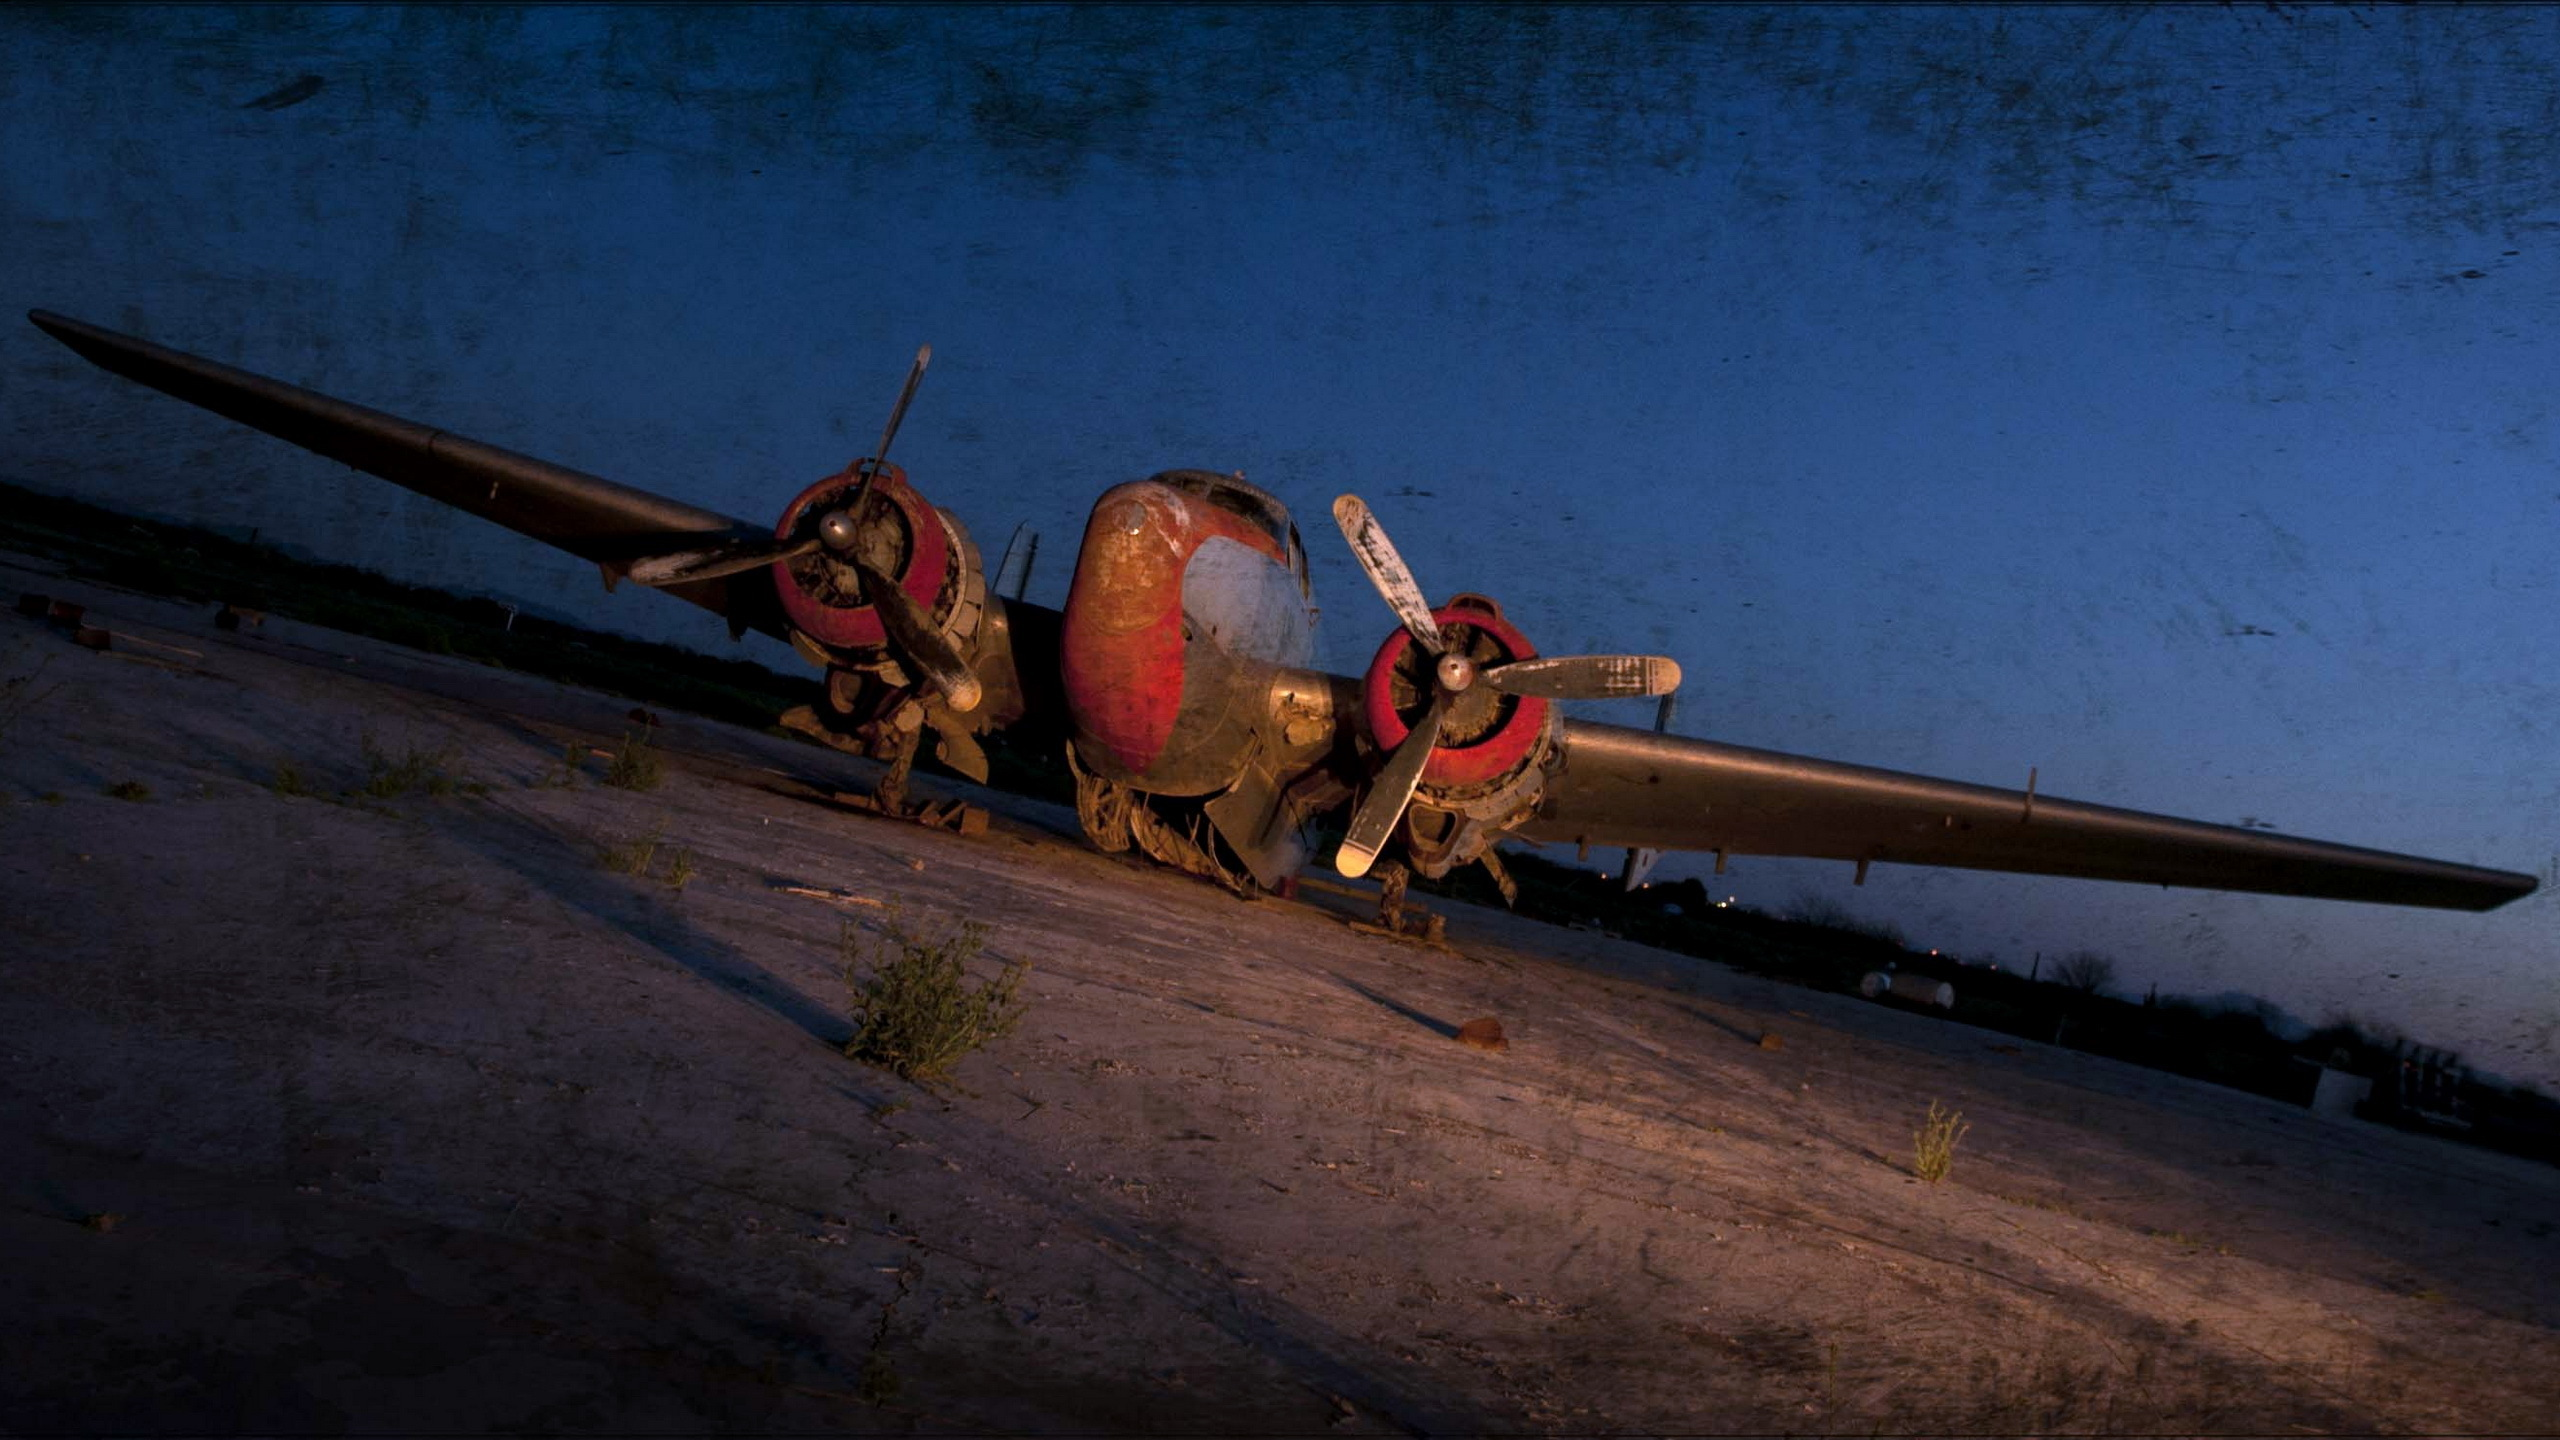 Aircraft Hd Wallpaper Background Image 2560x1440 Id